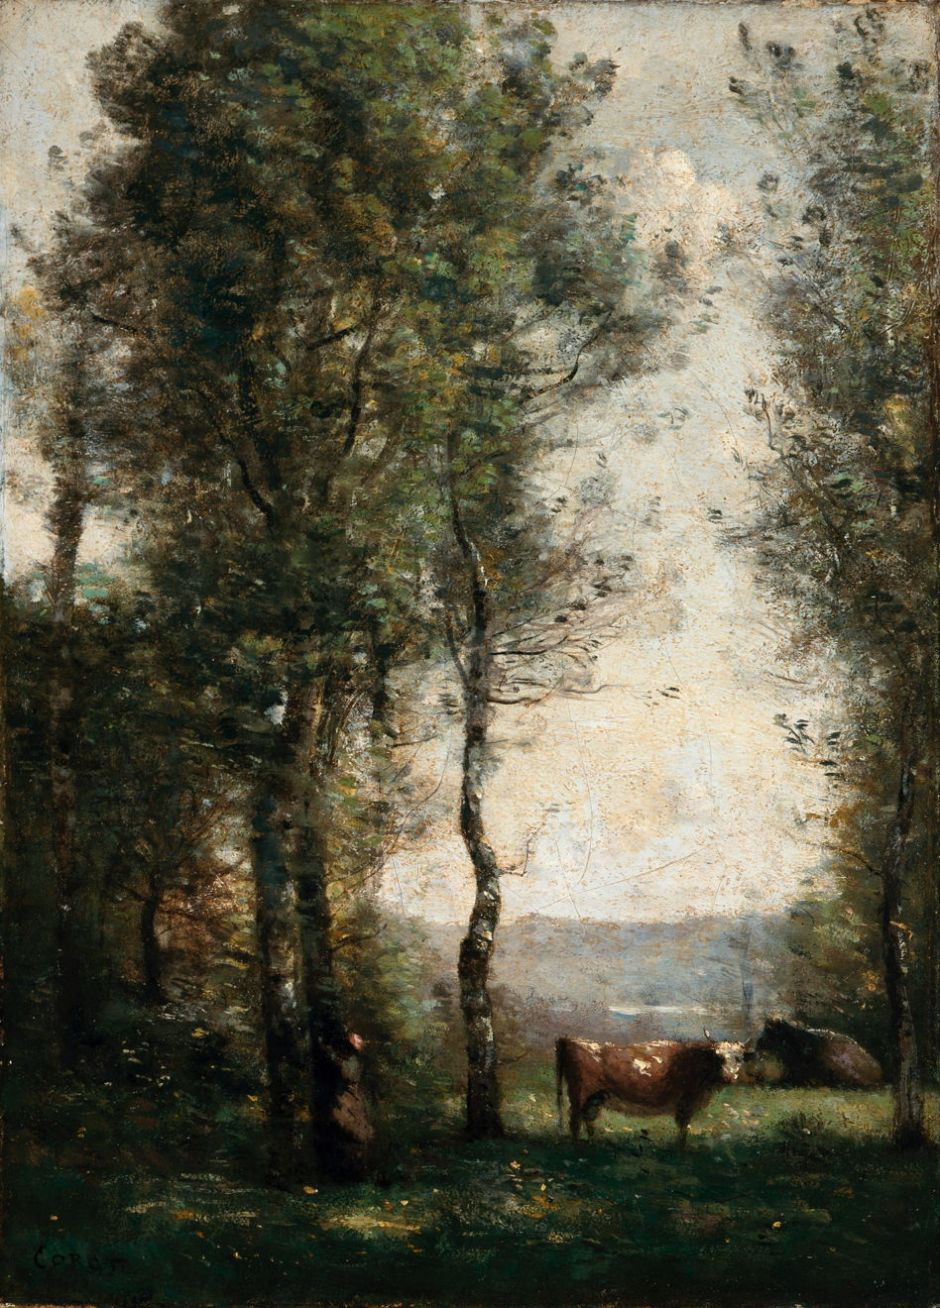 Jean-Baptiste-Camille Corot (1796–1875), Wooded Landscape with Cows in a Clearing (c 1855), oil on canvas, 41.9 × 29.8 cm, Los Angeles County Museum of Art, Los Angeles, CA. Courtesy of Los Angeles County Museum of Art, via Wikimedia Commons.